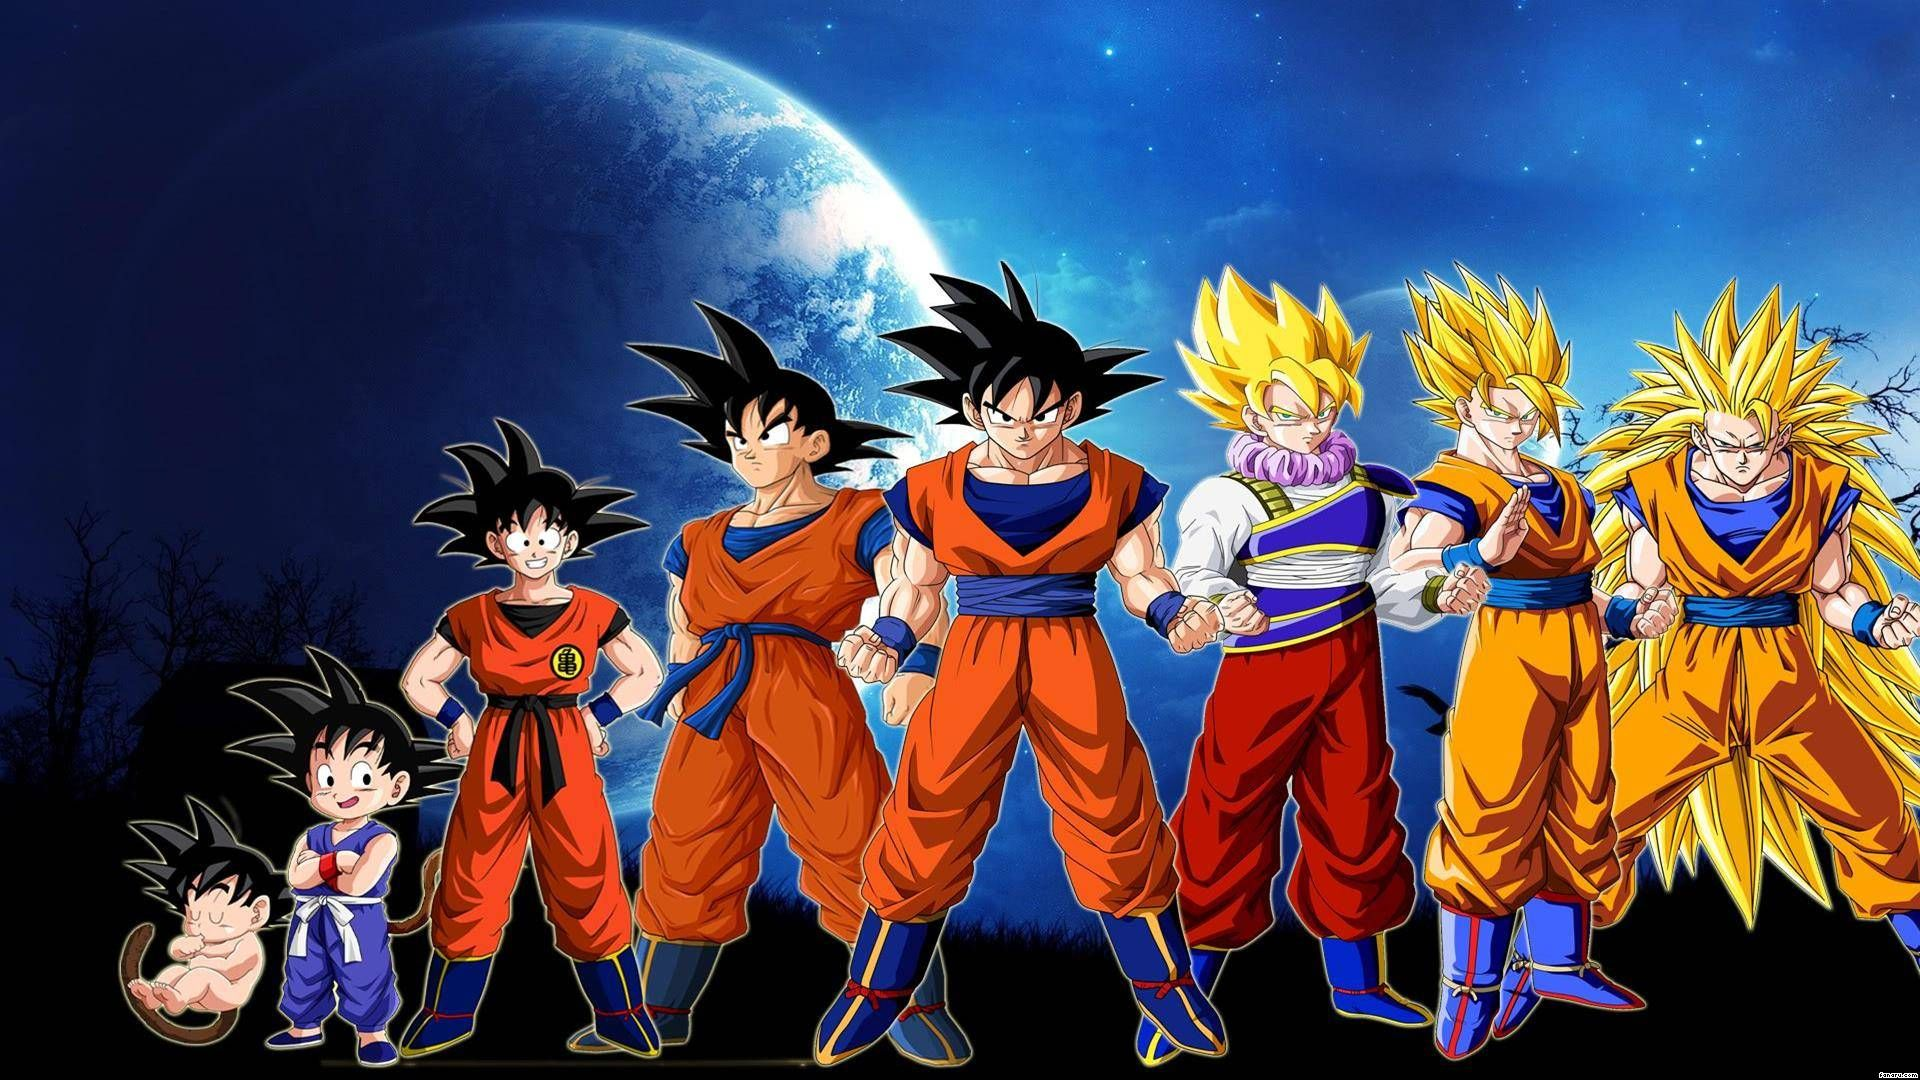 Dragon Ball Z Hd Wallpapers Backgrounds Wallpaper Super Dragonball